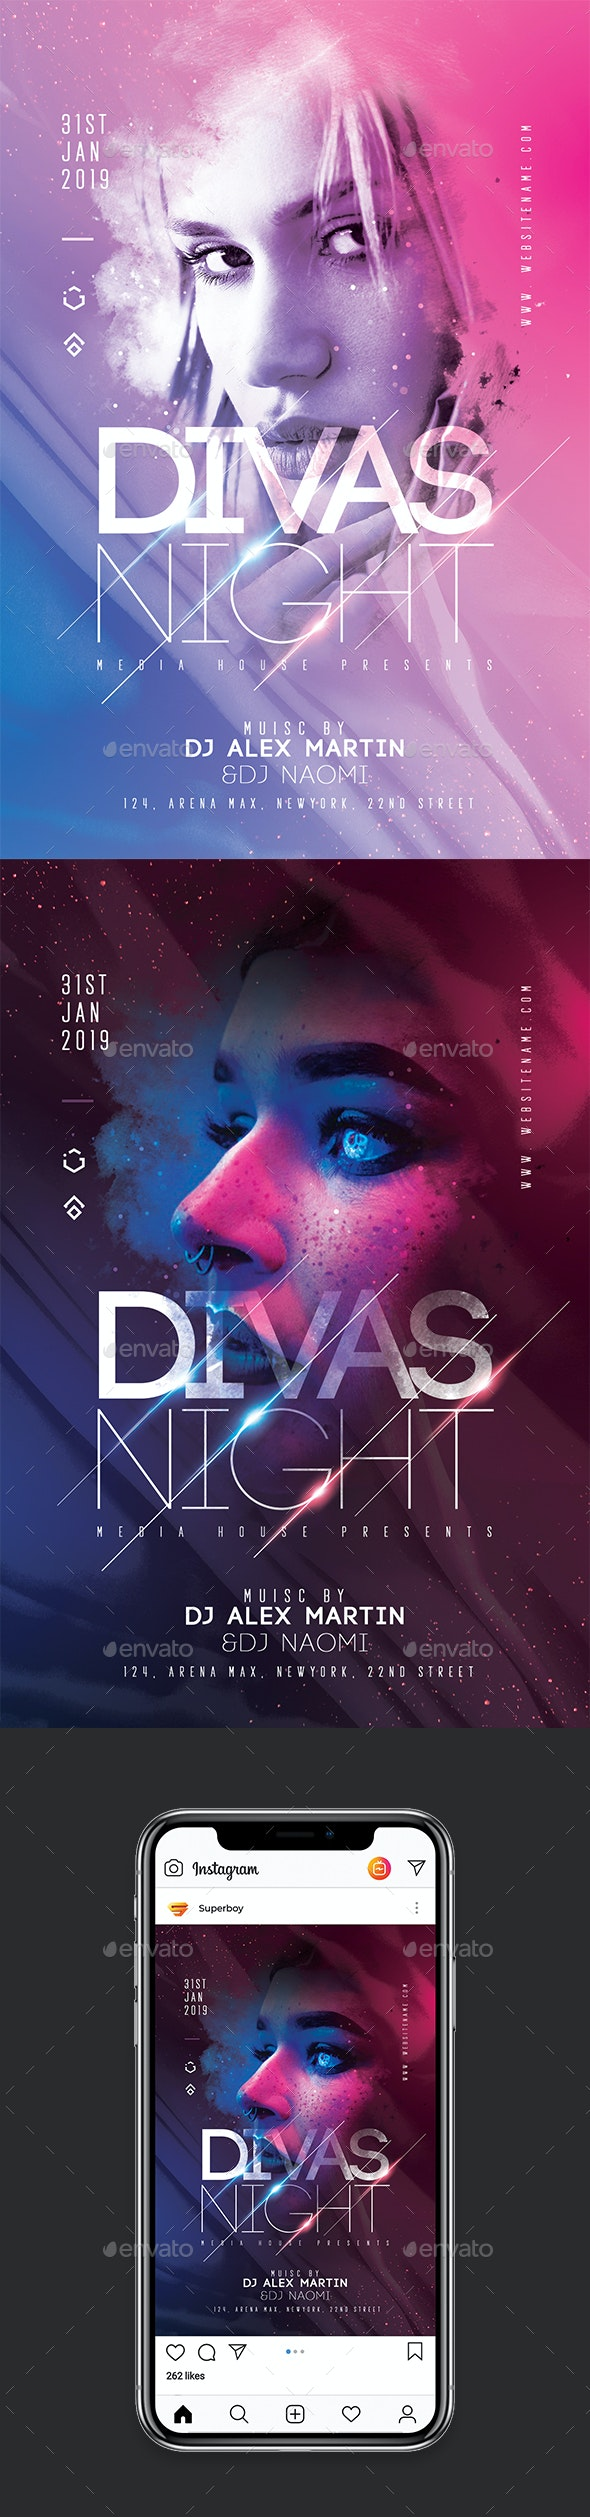 Divas Night Party Flyer - Clubs & Parties Events